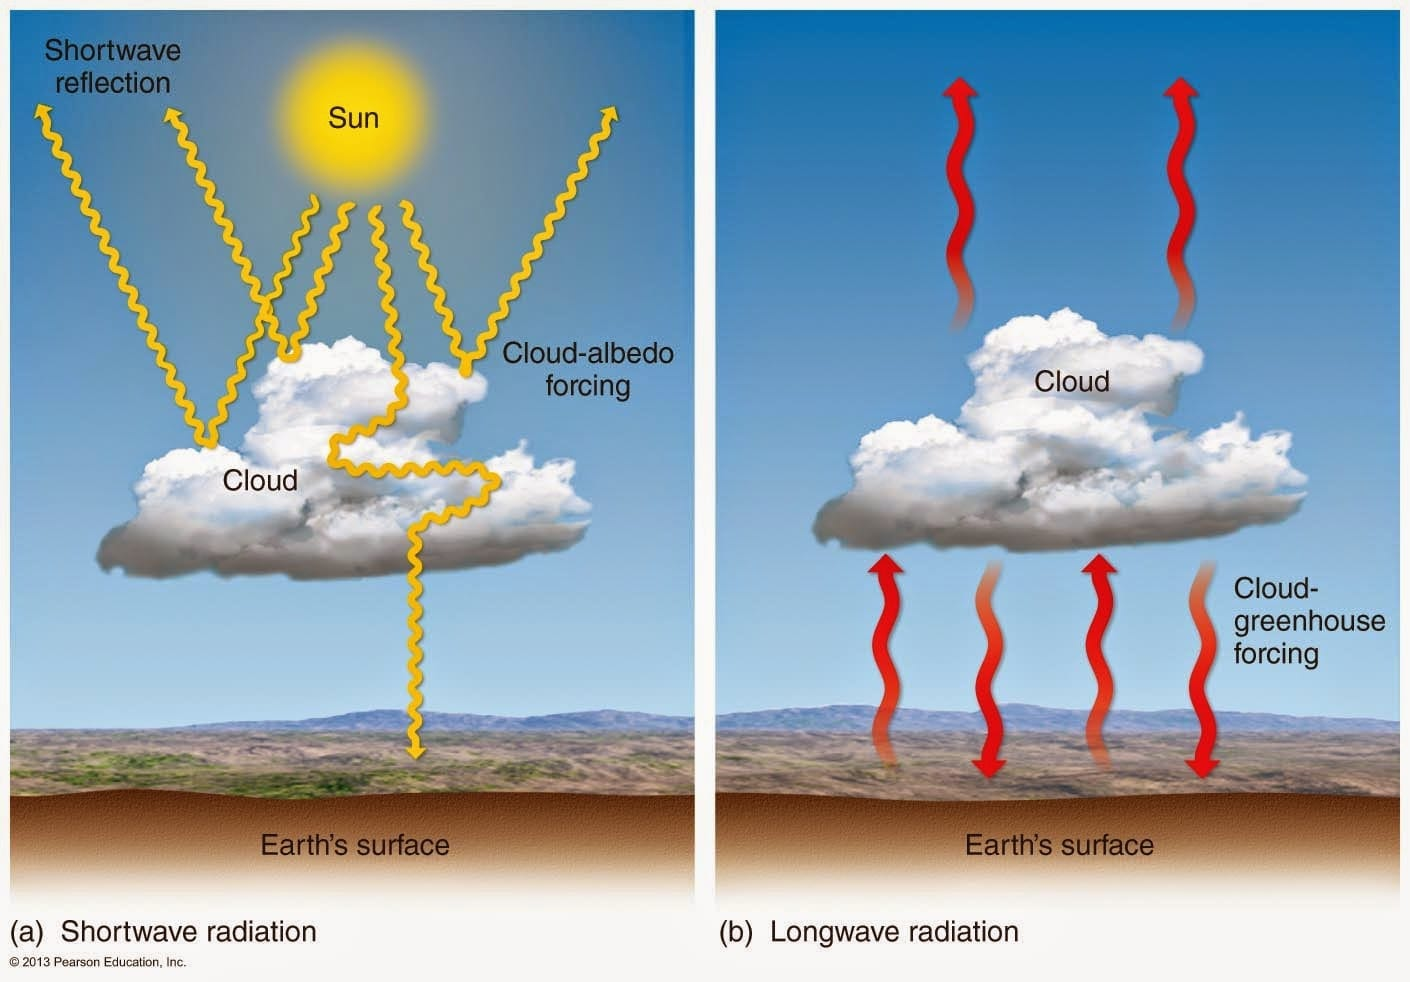 Cost of cloud brightening for cooler planet revealed - Innovation Toronto